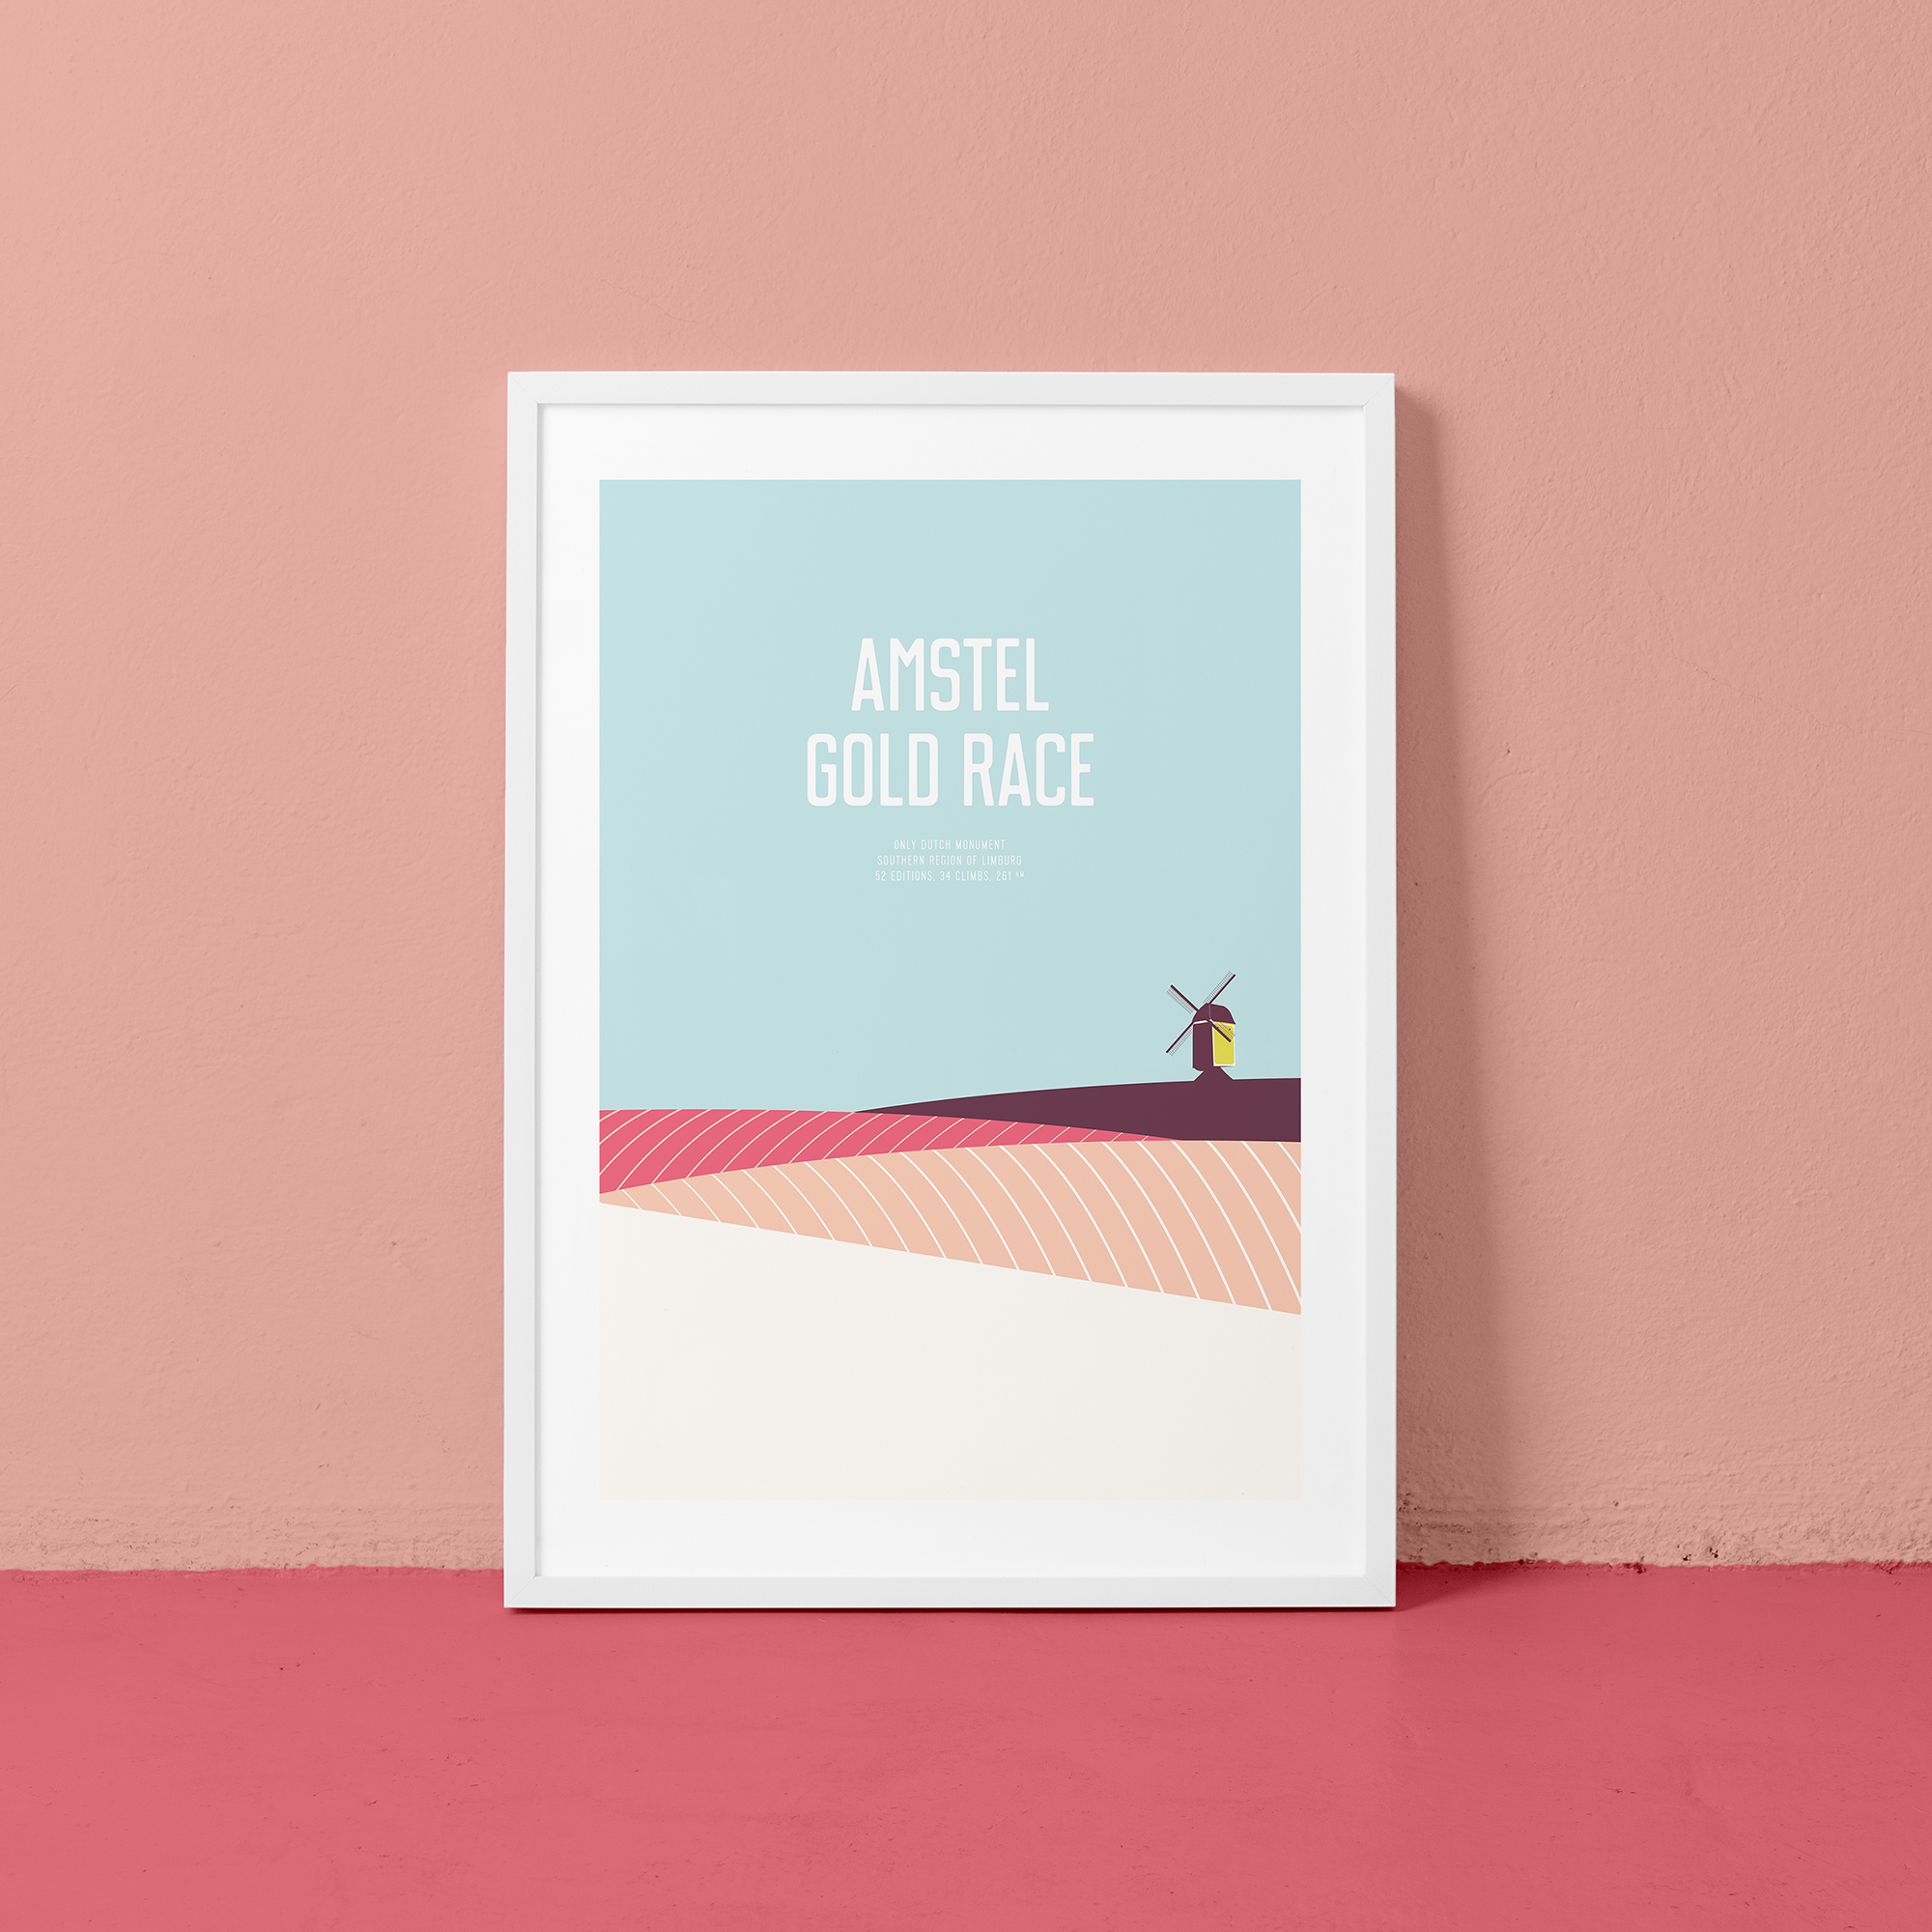 AmstelGold